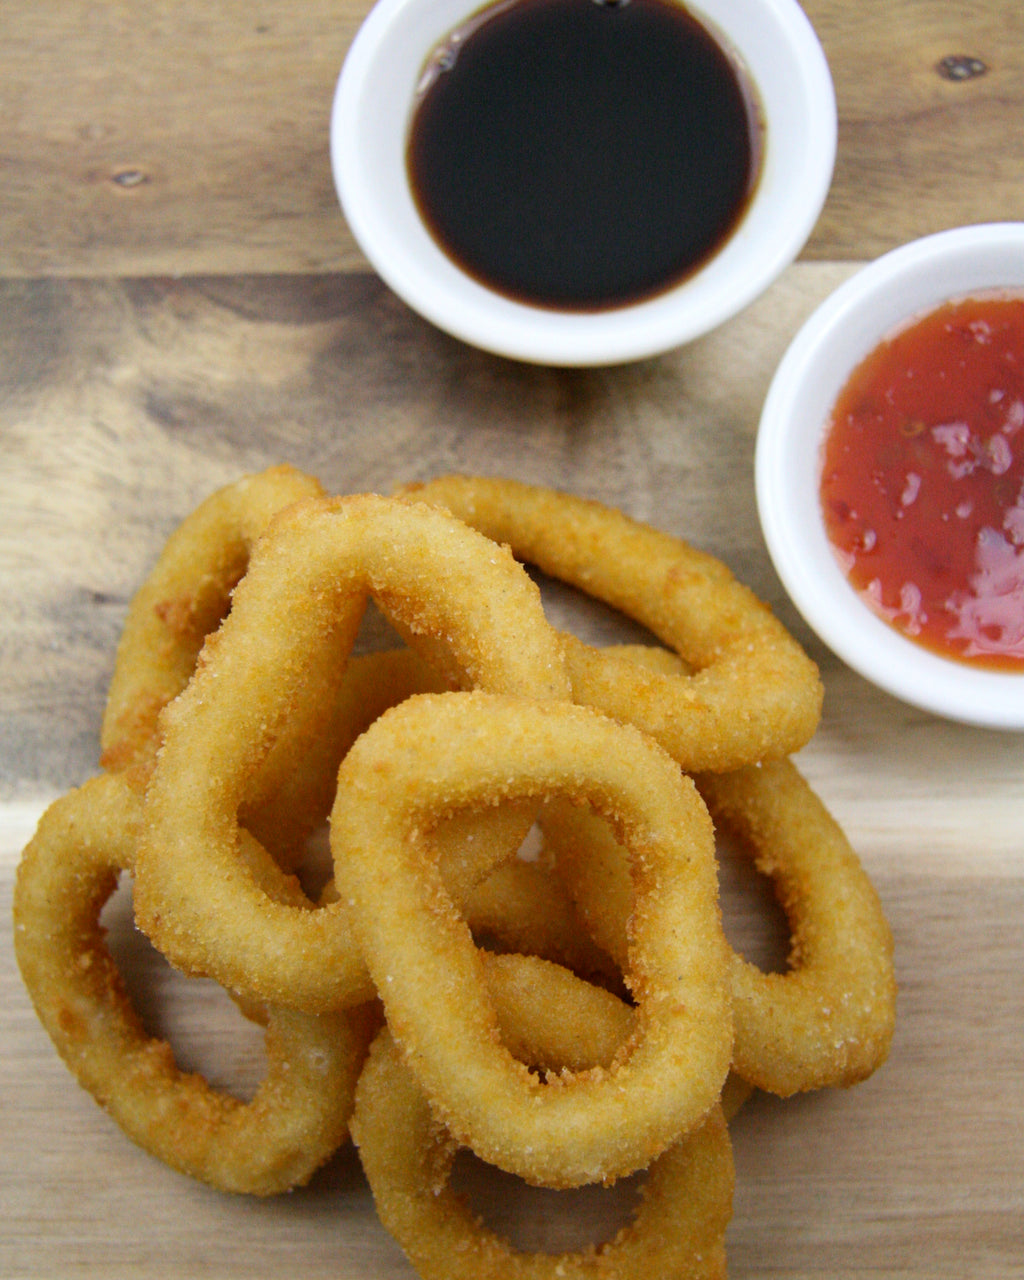 Crumbed Calamari Rings 1kg Bag